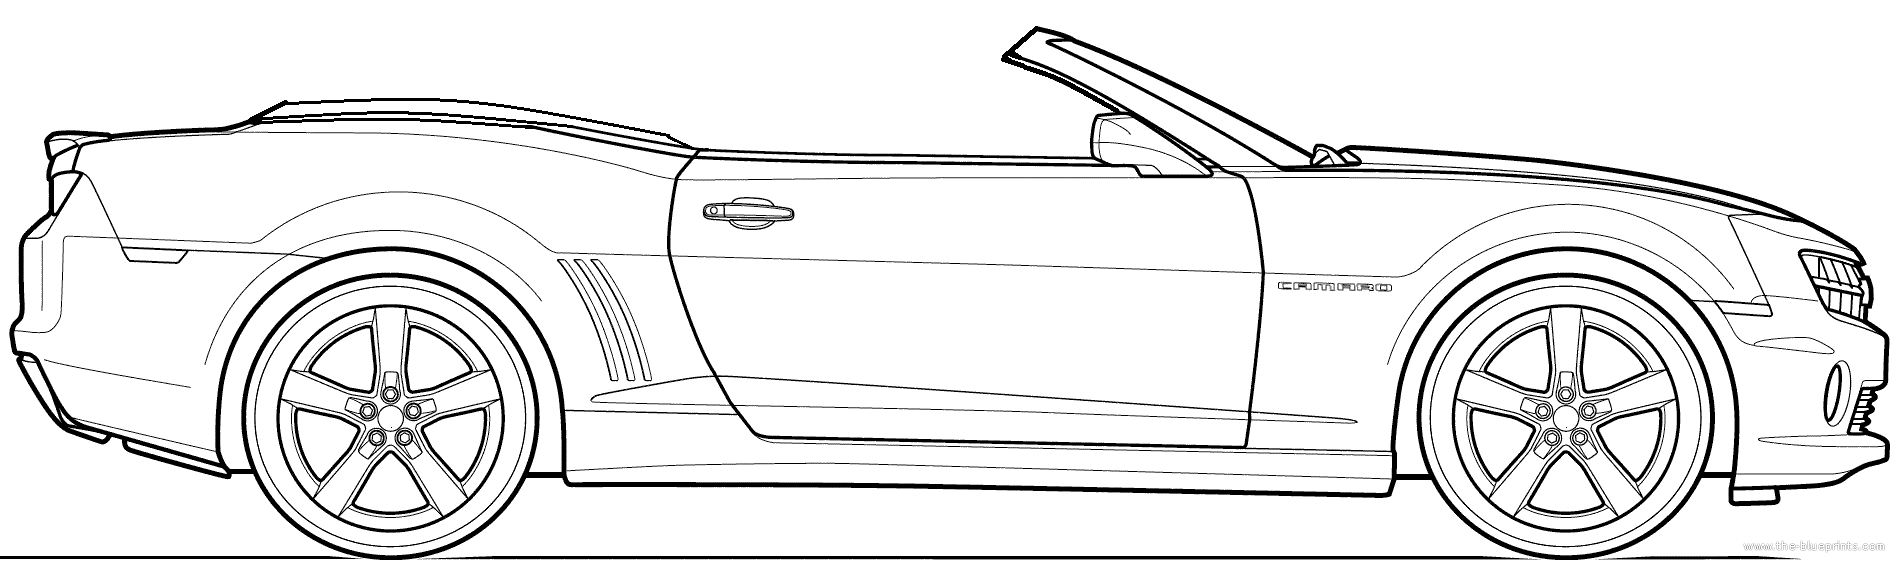 Chevrolet Camaro Coloring Pages Printable - Coloring Pages For All ...